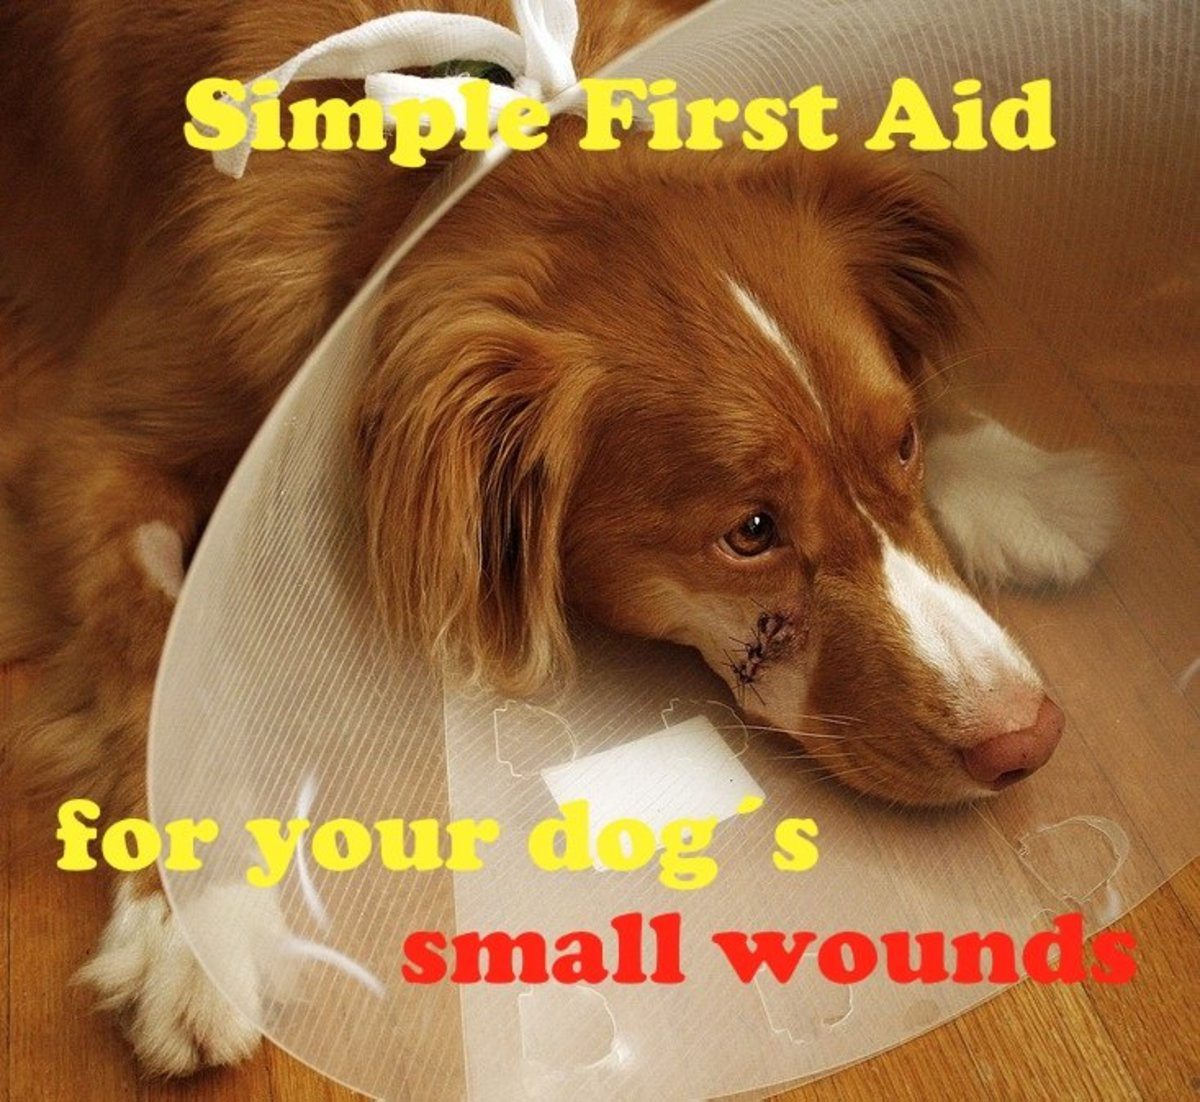 Some dog wounds just need simple first aid at home.